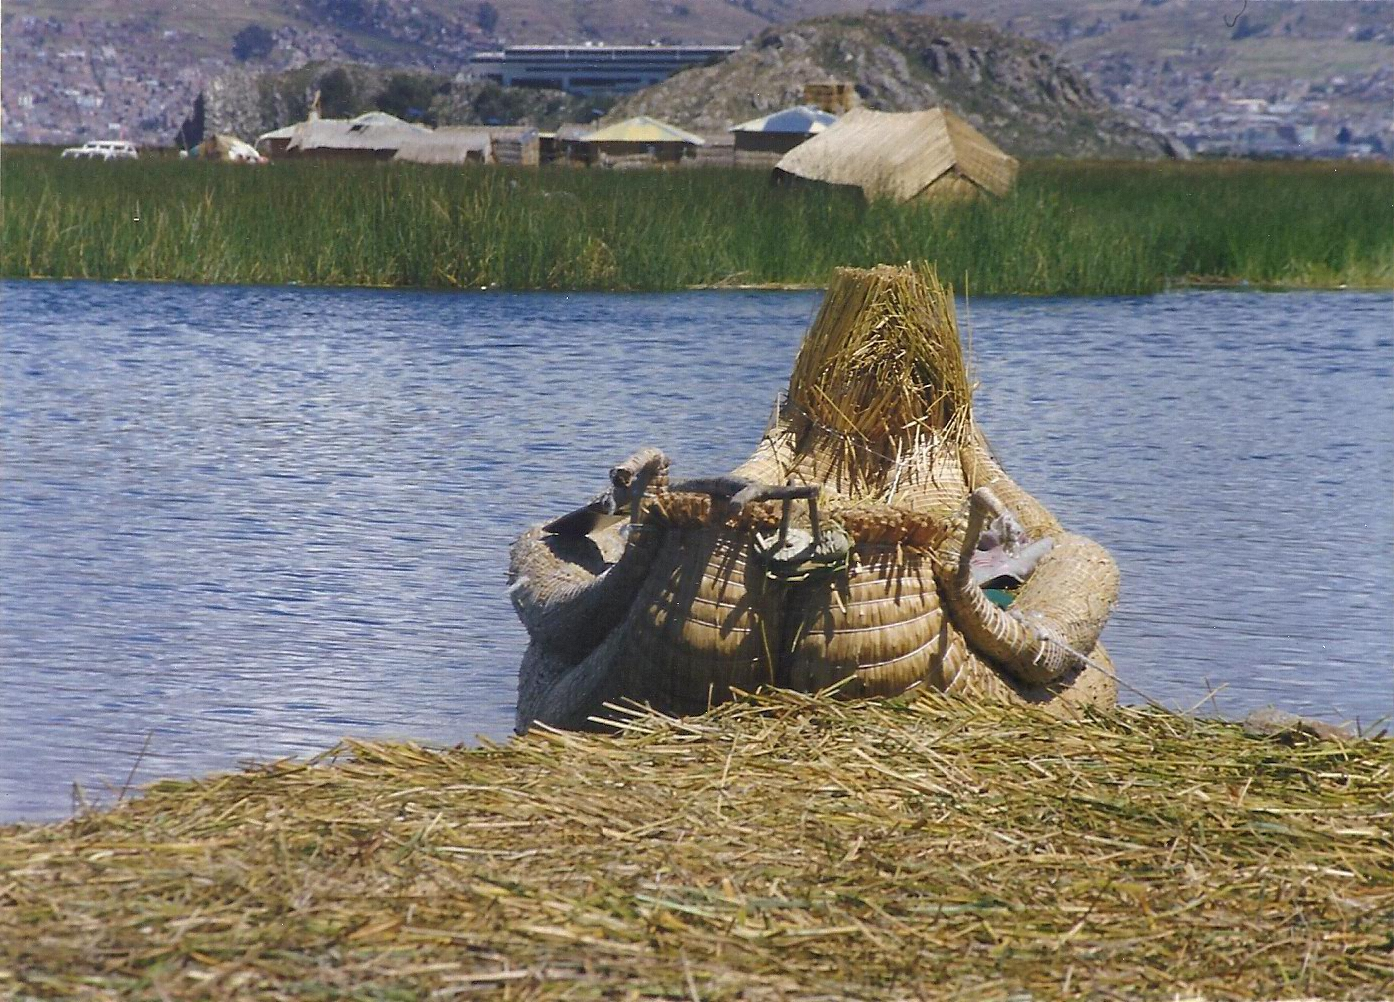 Lake Titicaca: small boats and floating islands made of reeds – intheboatshed.net